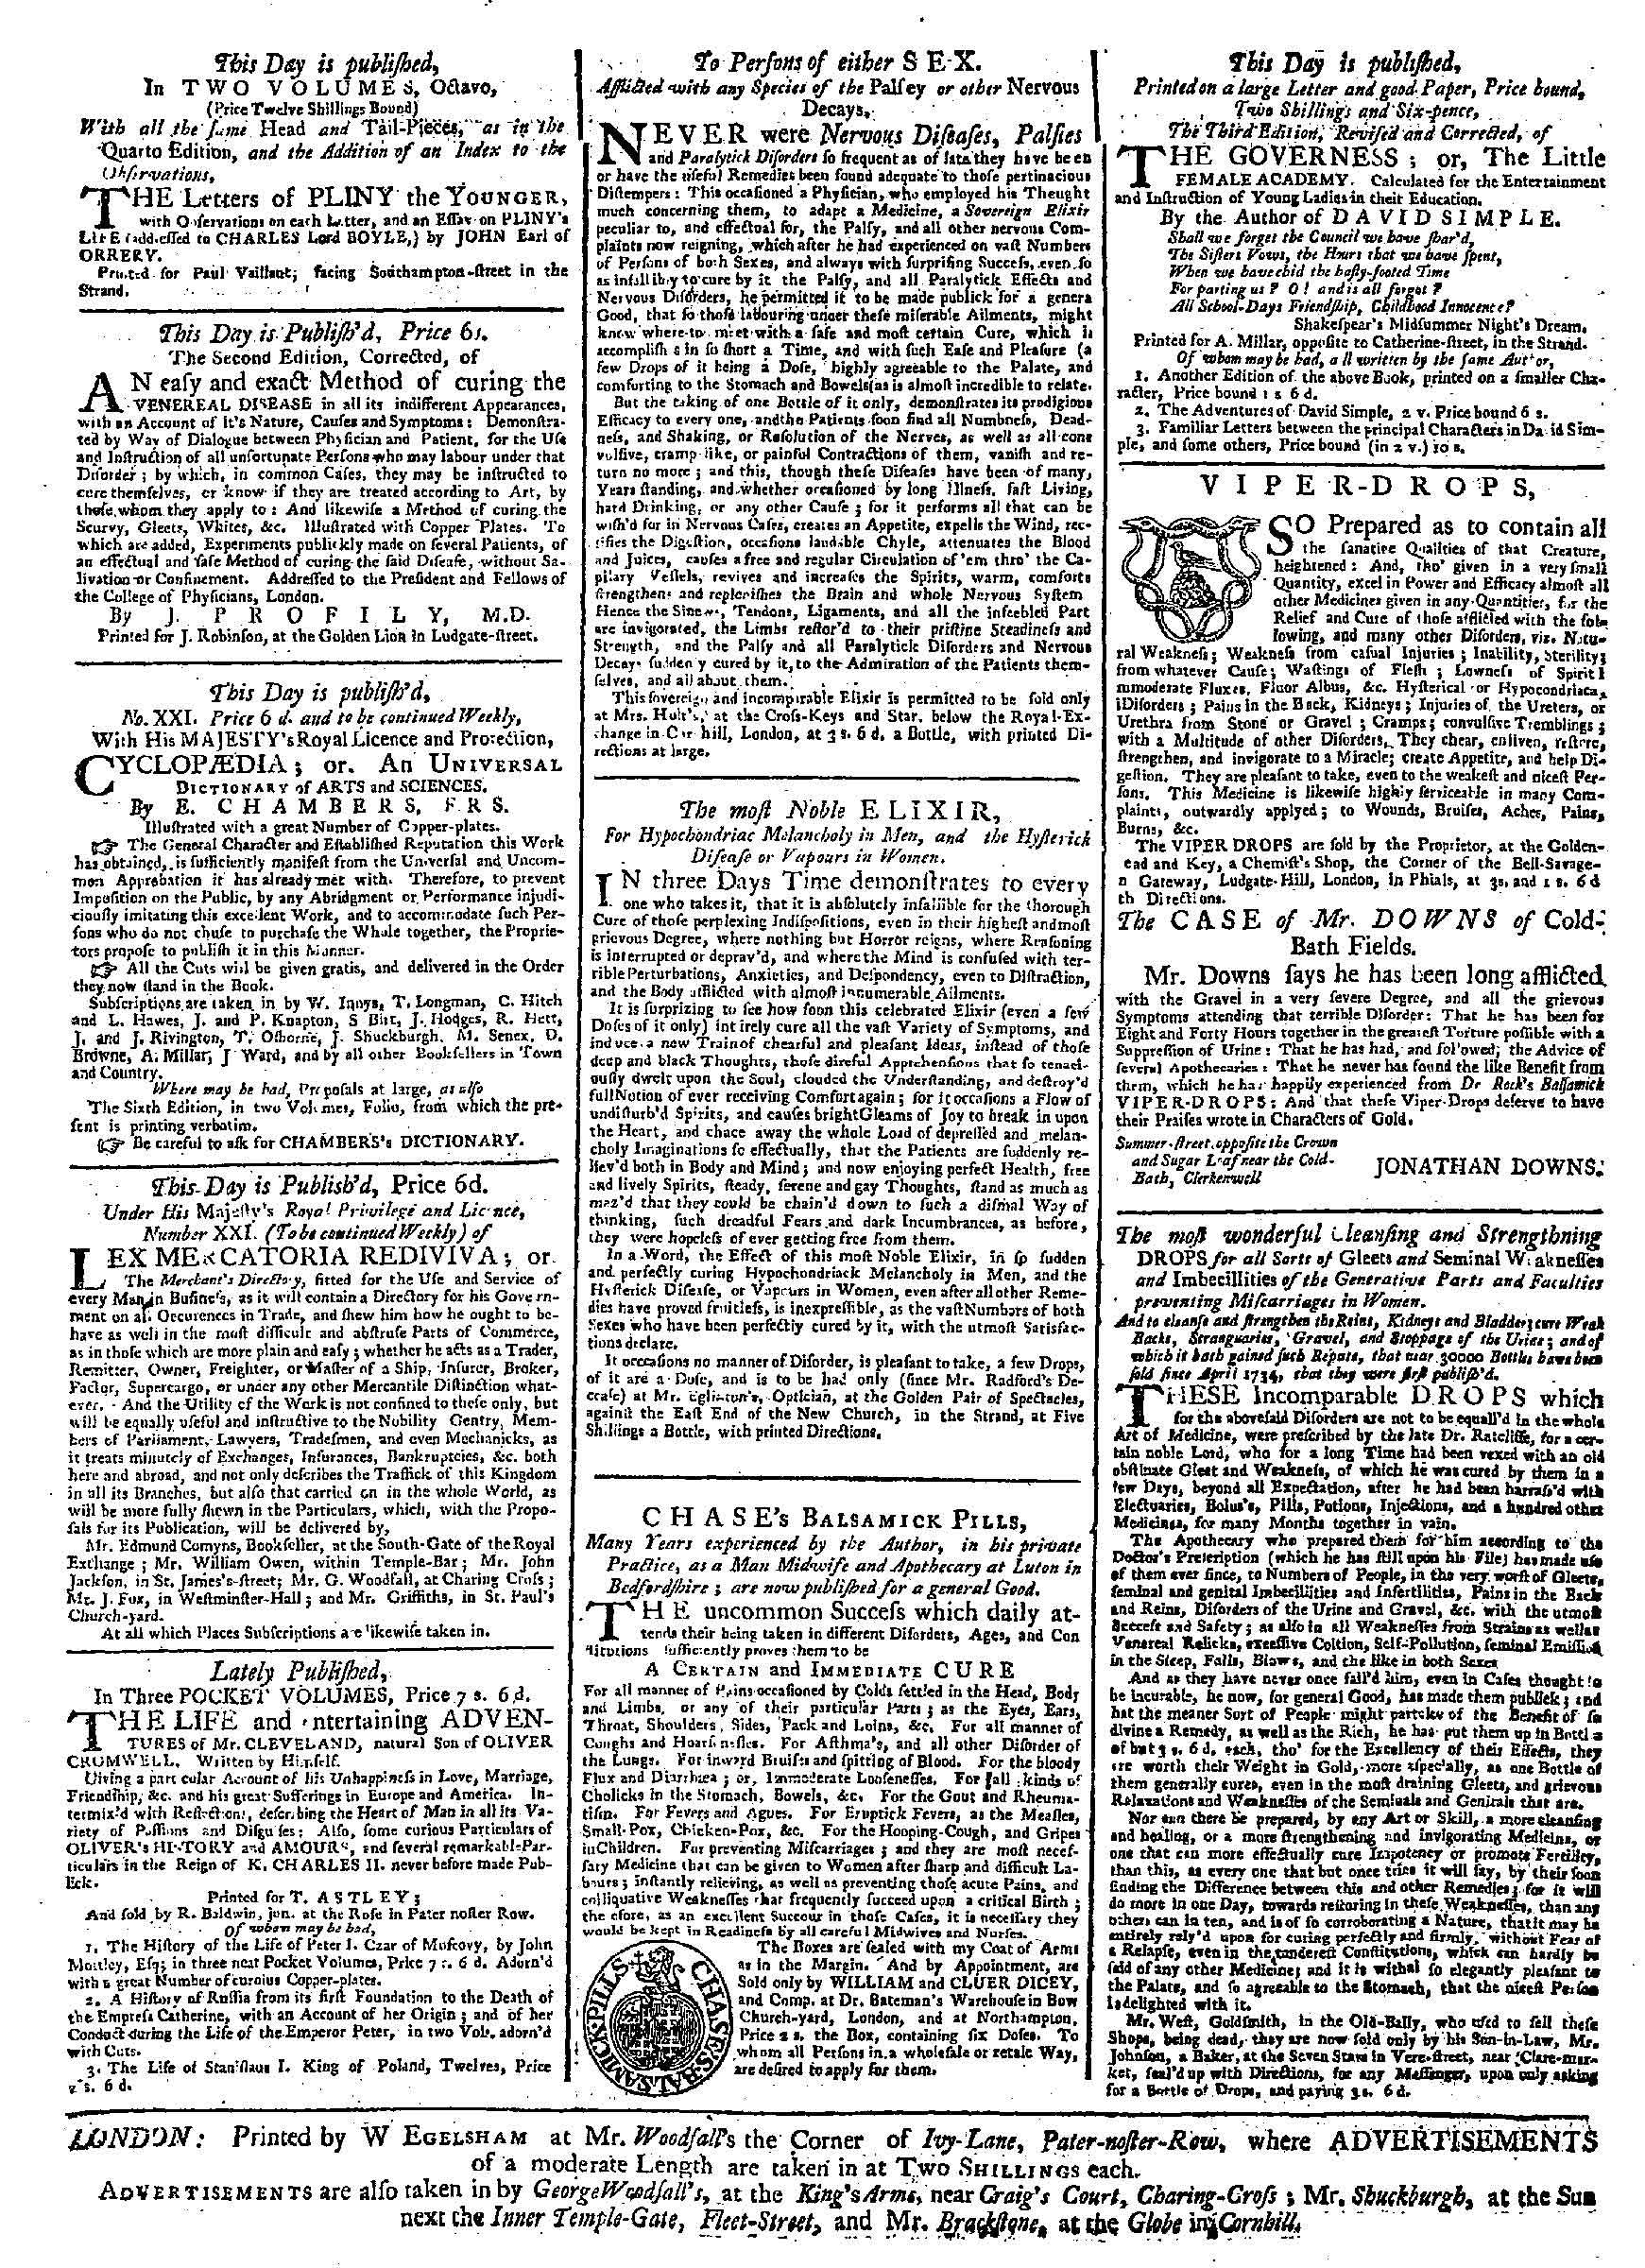 Advertisements for quack doctors' potions from the General Advertiser